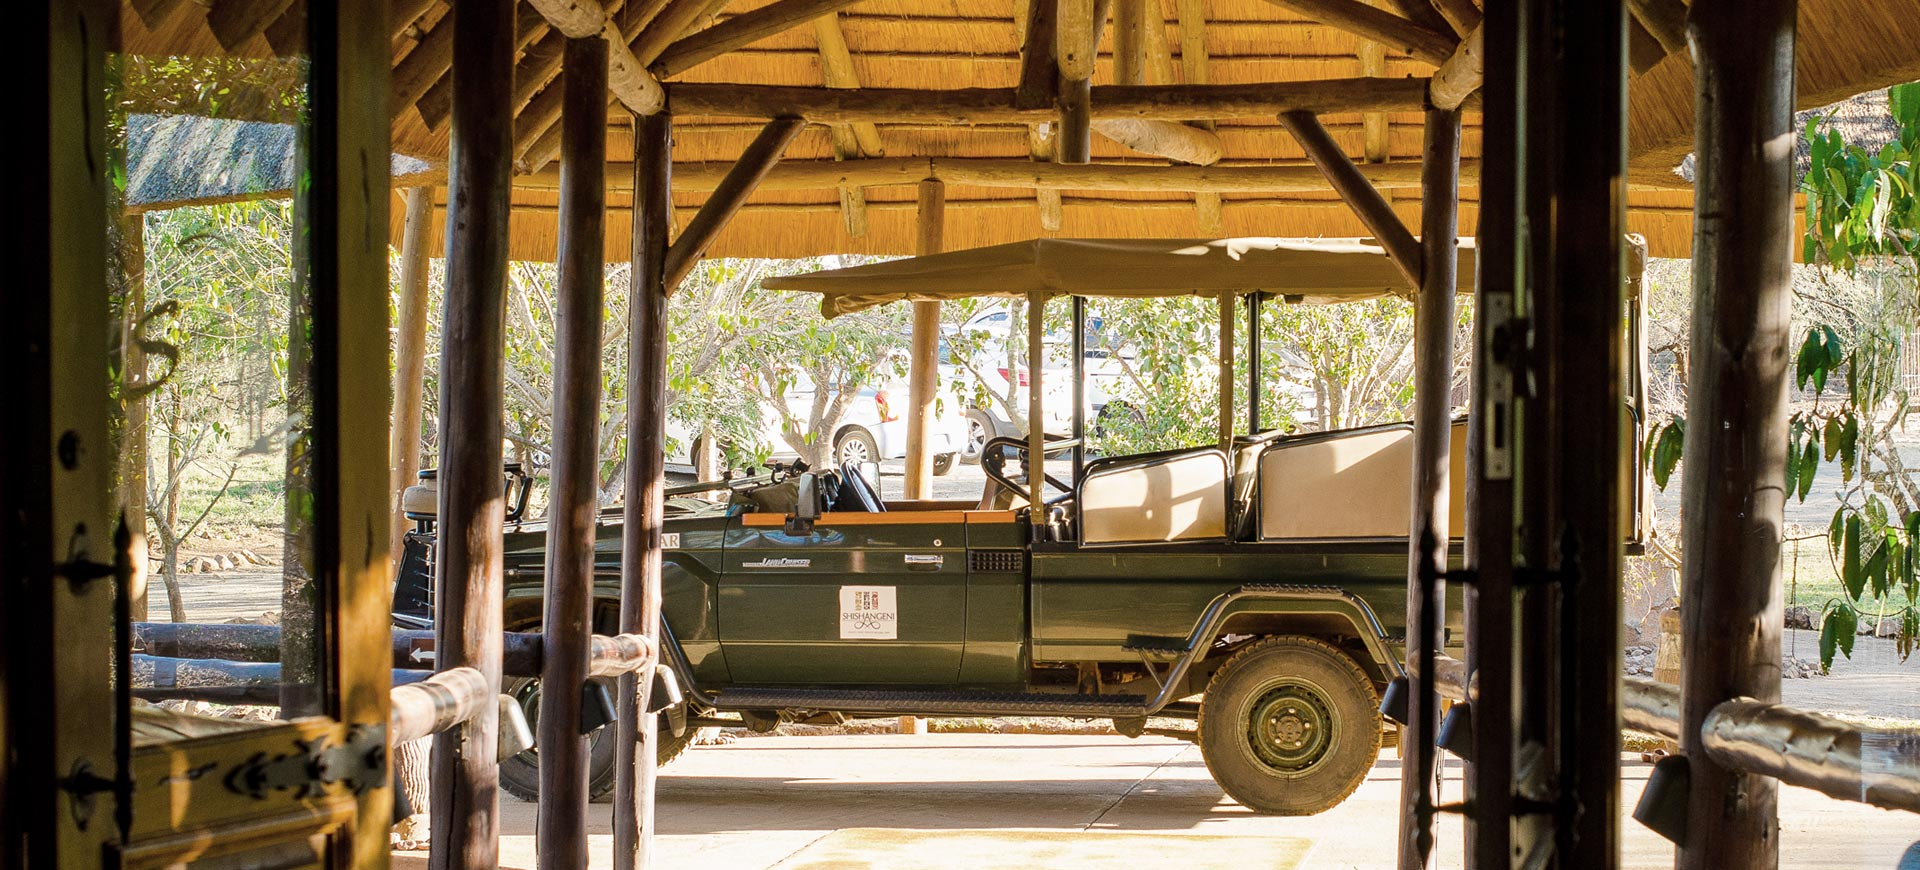 Shishangeni Private Lodge Kruger Park